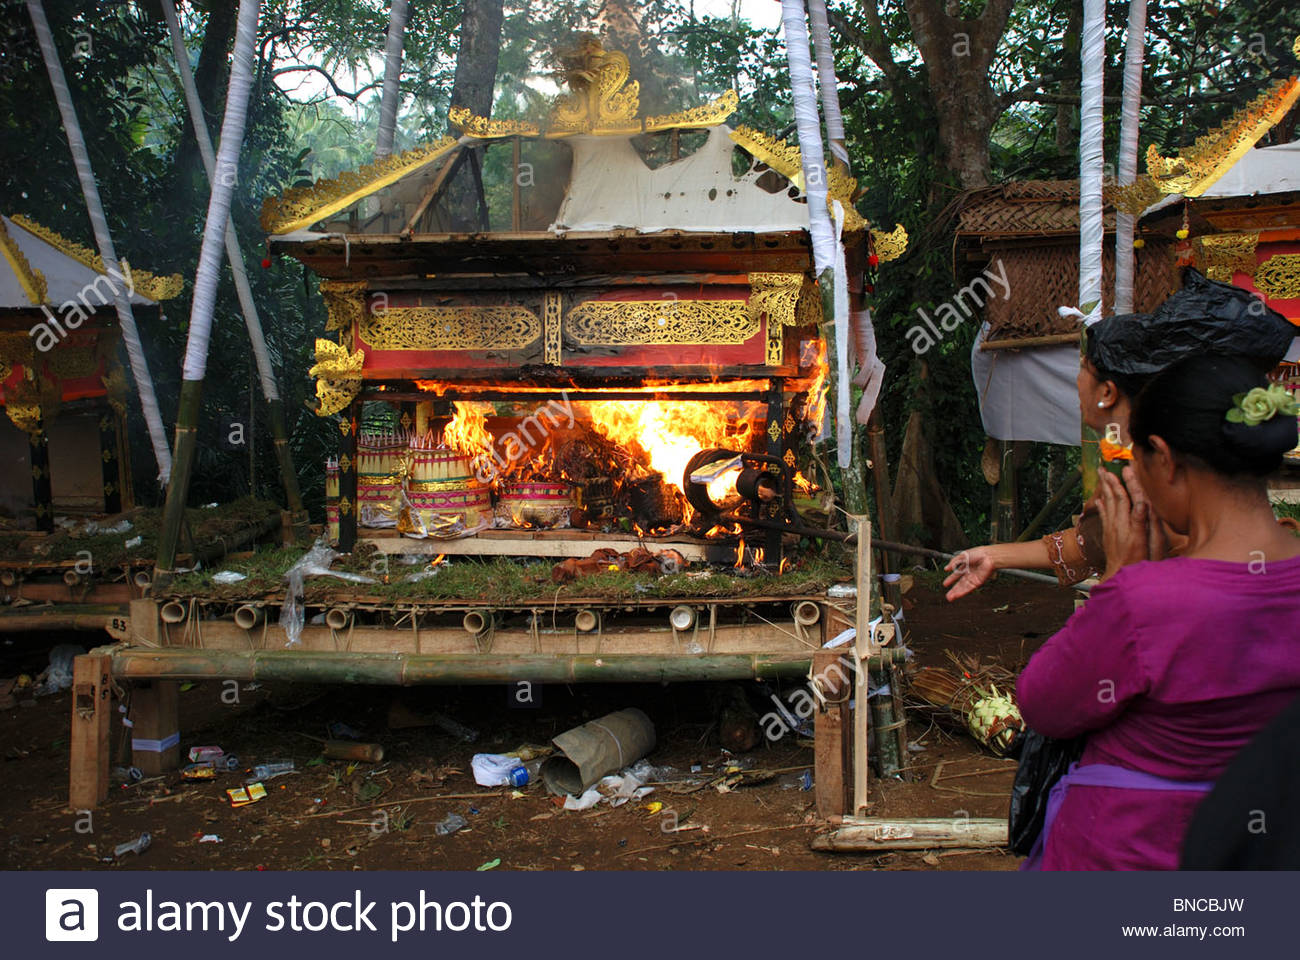 High pressure parraffin burner used to incinerate offerings coffin and body at Hindu cremation ceremony - Stock Image